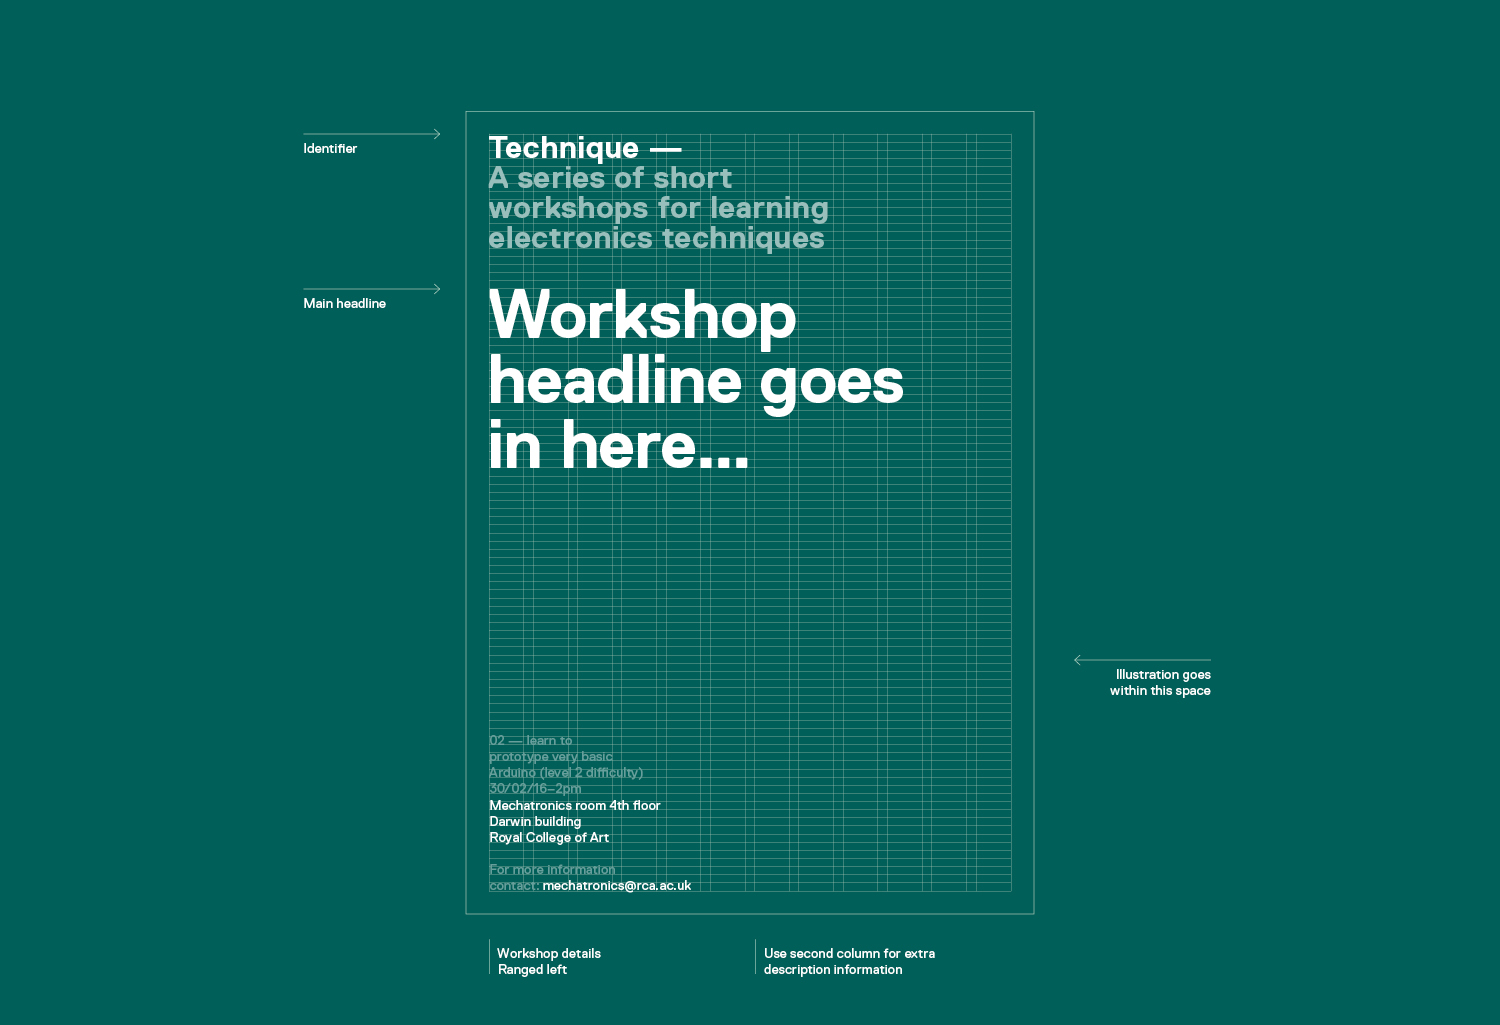 Technique workshops_Royal College of Art_poster designs_identity_Alan Clarke-Symonds_grid system.jpg